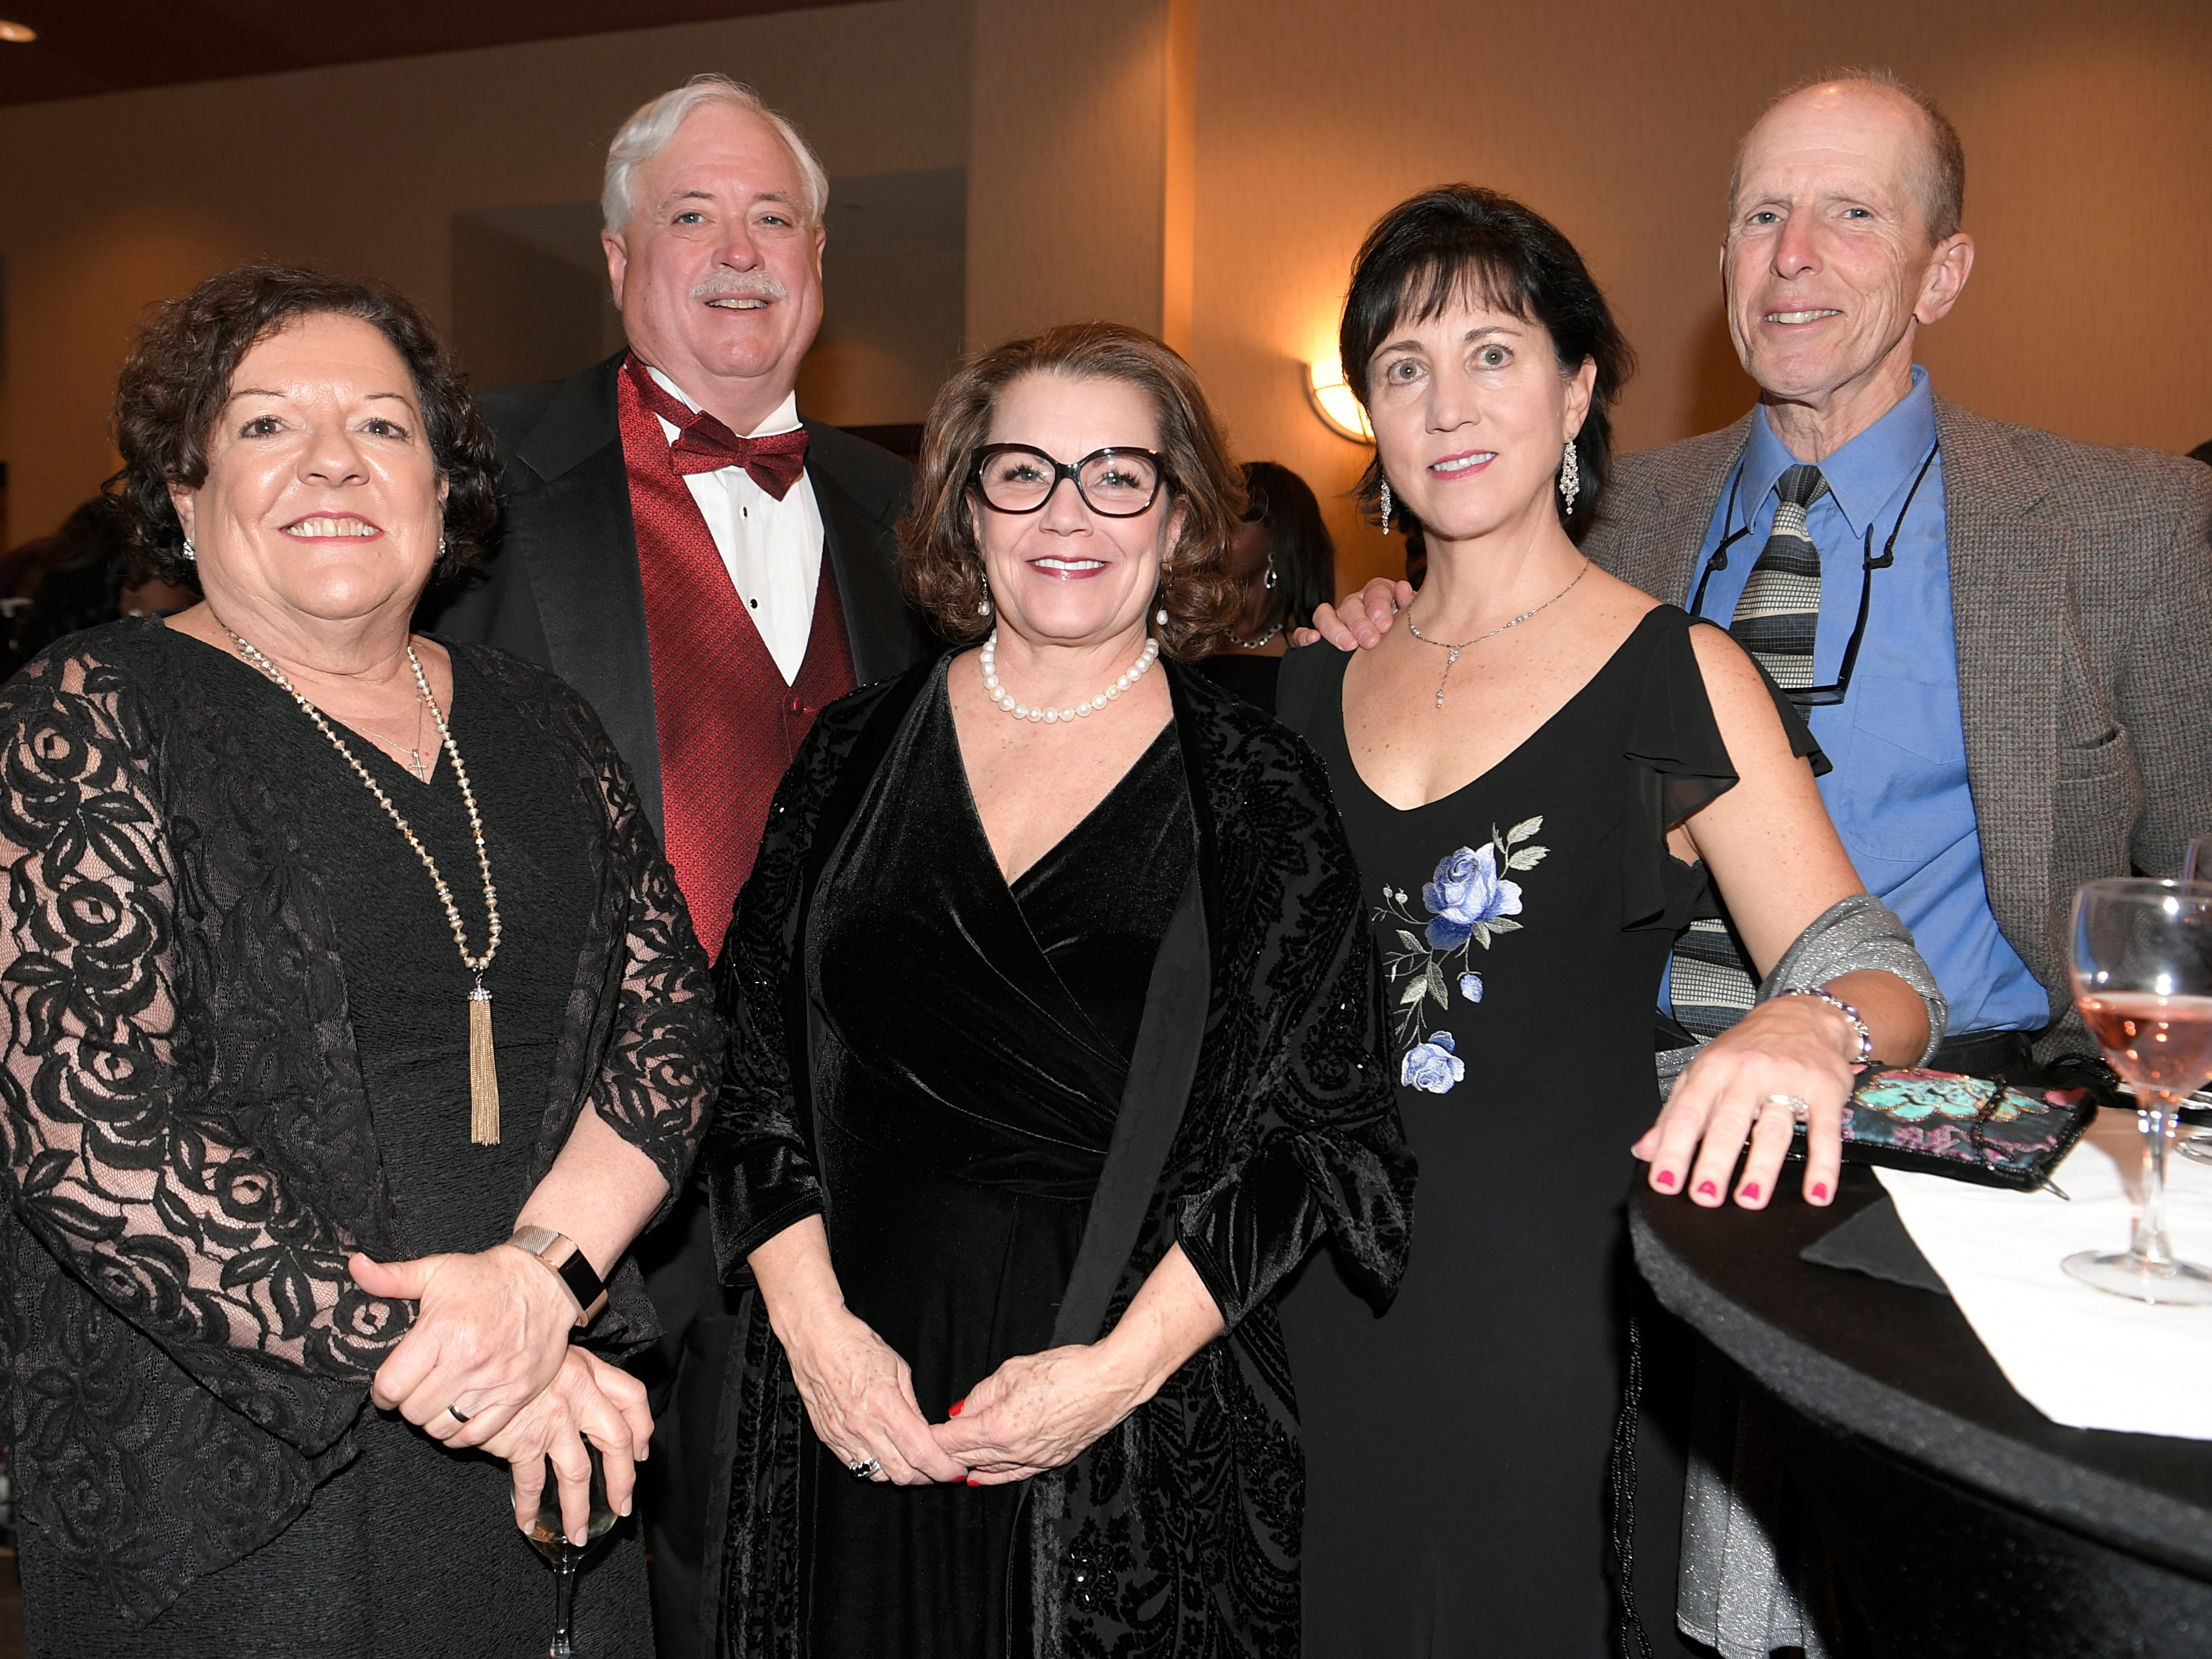 Diane and Steve Smith, Cindi Parmenter, Monica and Paul Garvey at the African American Heritage Society's 18th Annual Black Tie Affair at the Embassy Suites in Franklin on Sat., Feb. 2, 2019.